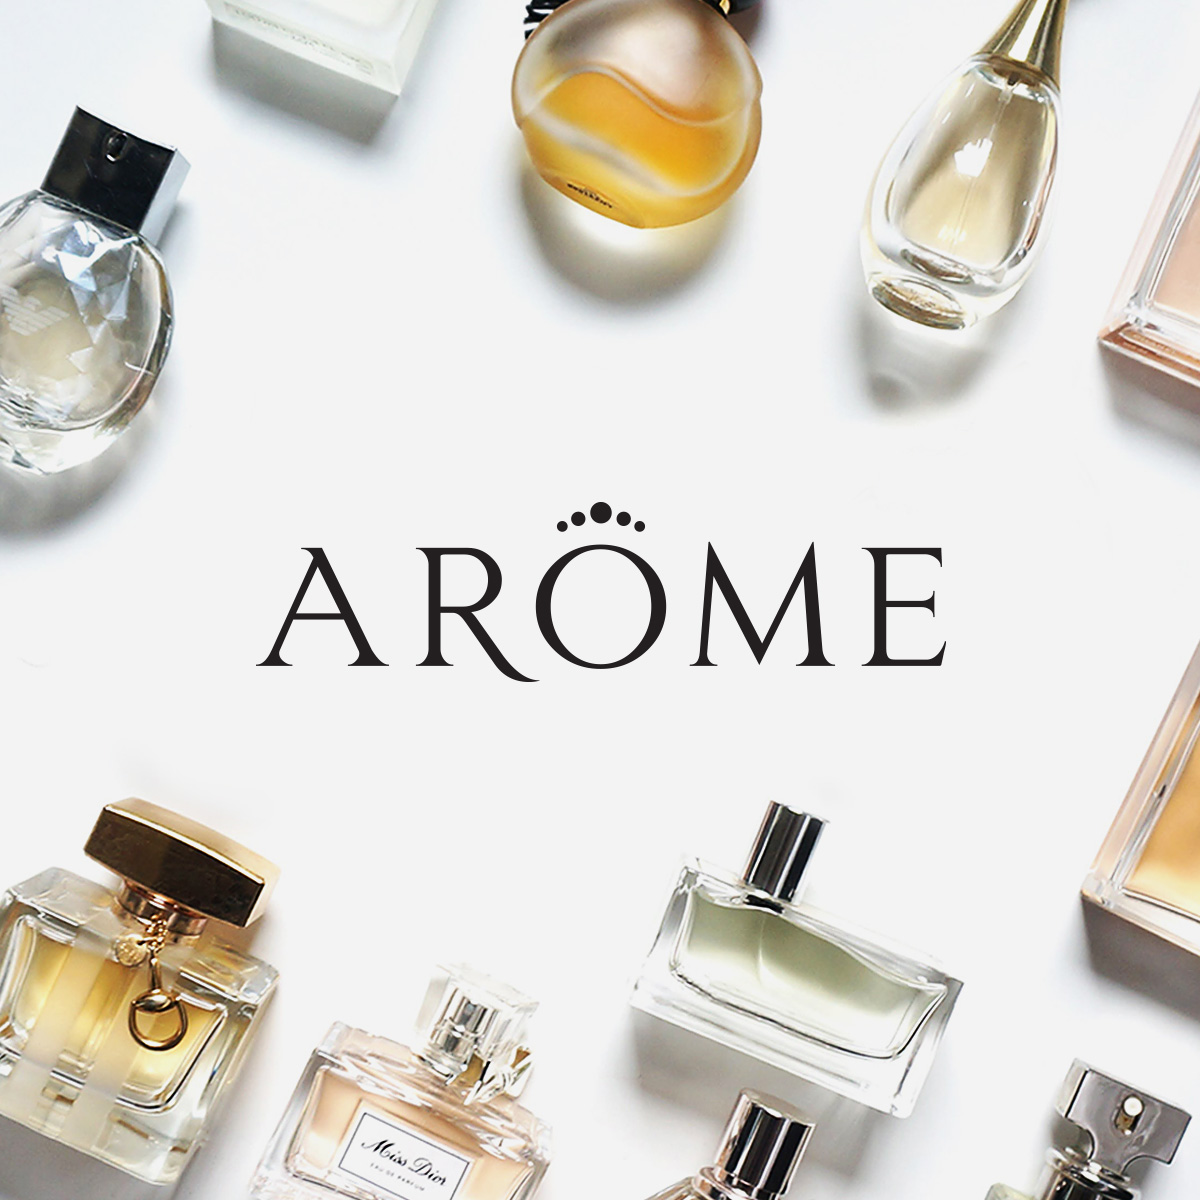 Brand identity for a perfumery store